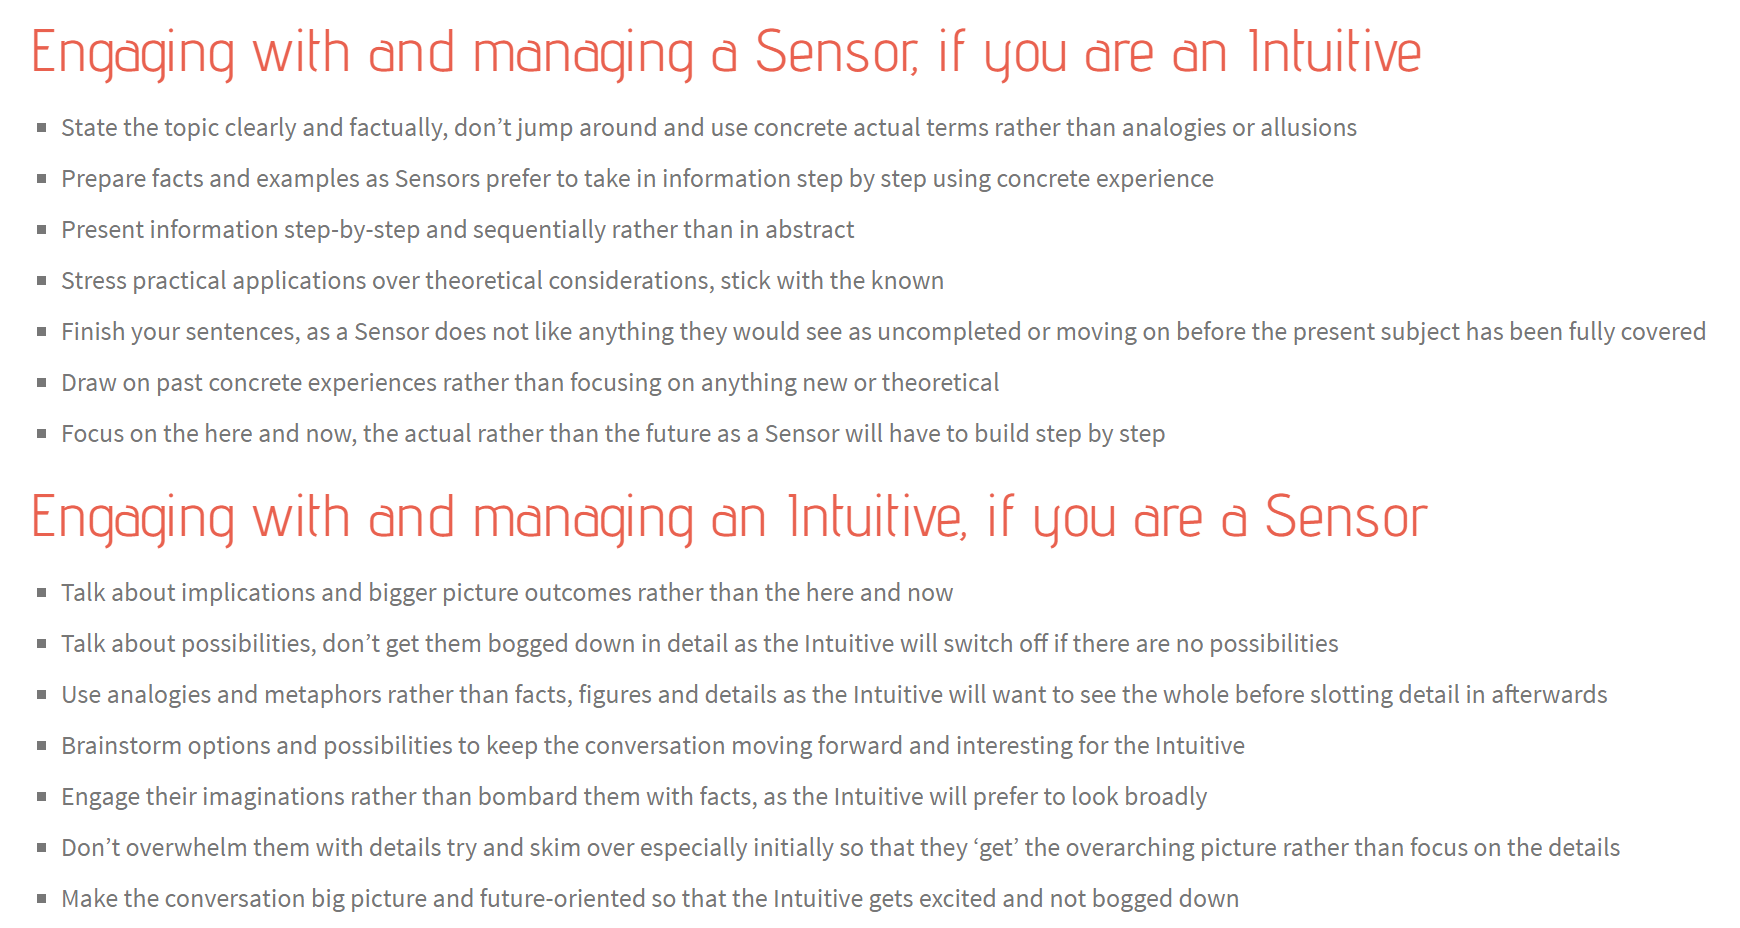 guides:sensing_vs_intutive_egnagement.png